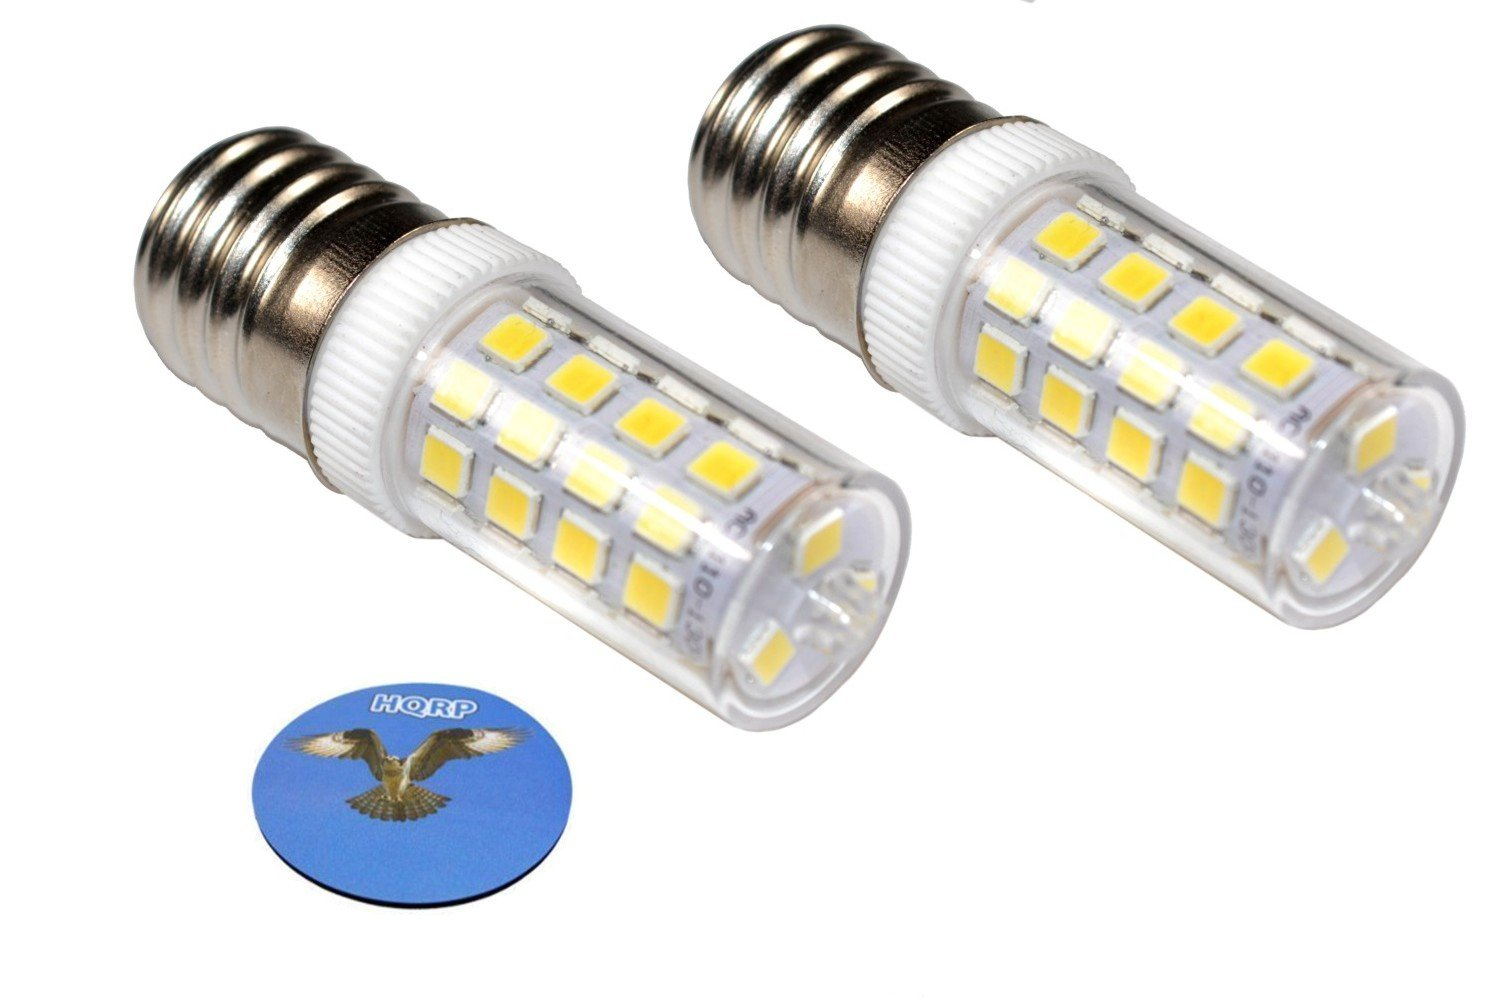 HQRP 2-Pack 110V E17 Dimmable LED Light Bulb Cool White for Whirlpool 8206232A Light Bulb Replacement fits Maytag KitchenAid Jenn-Air Amana Magic Chef Admiral Norge Roper + Coaster